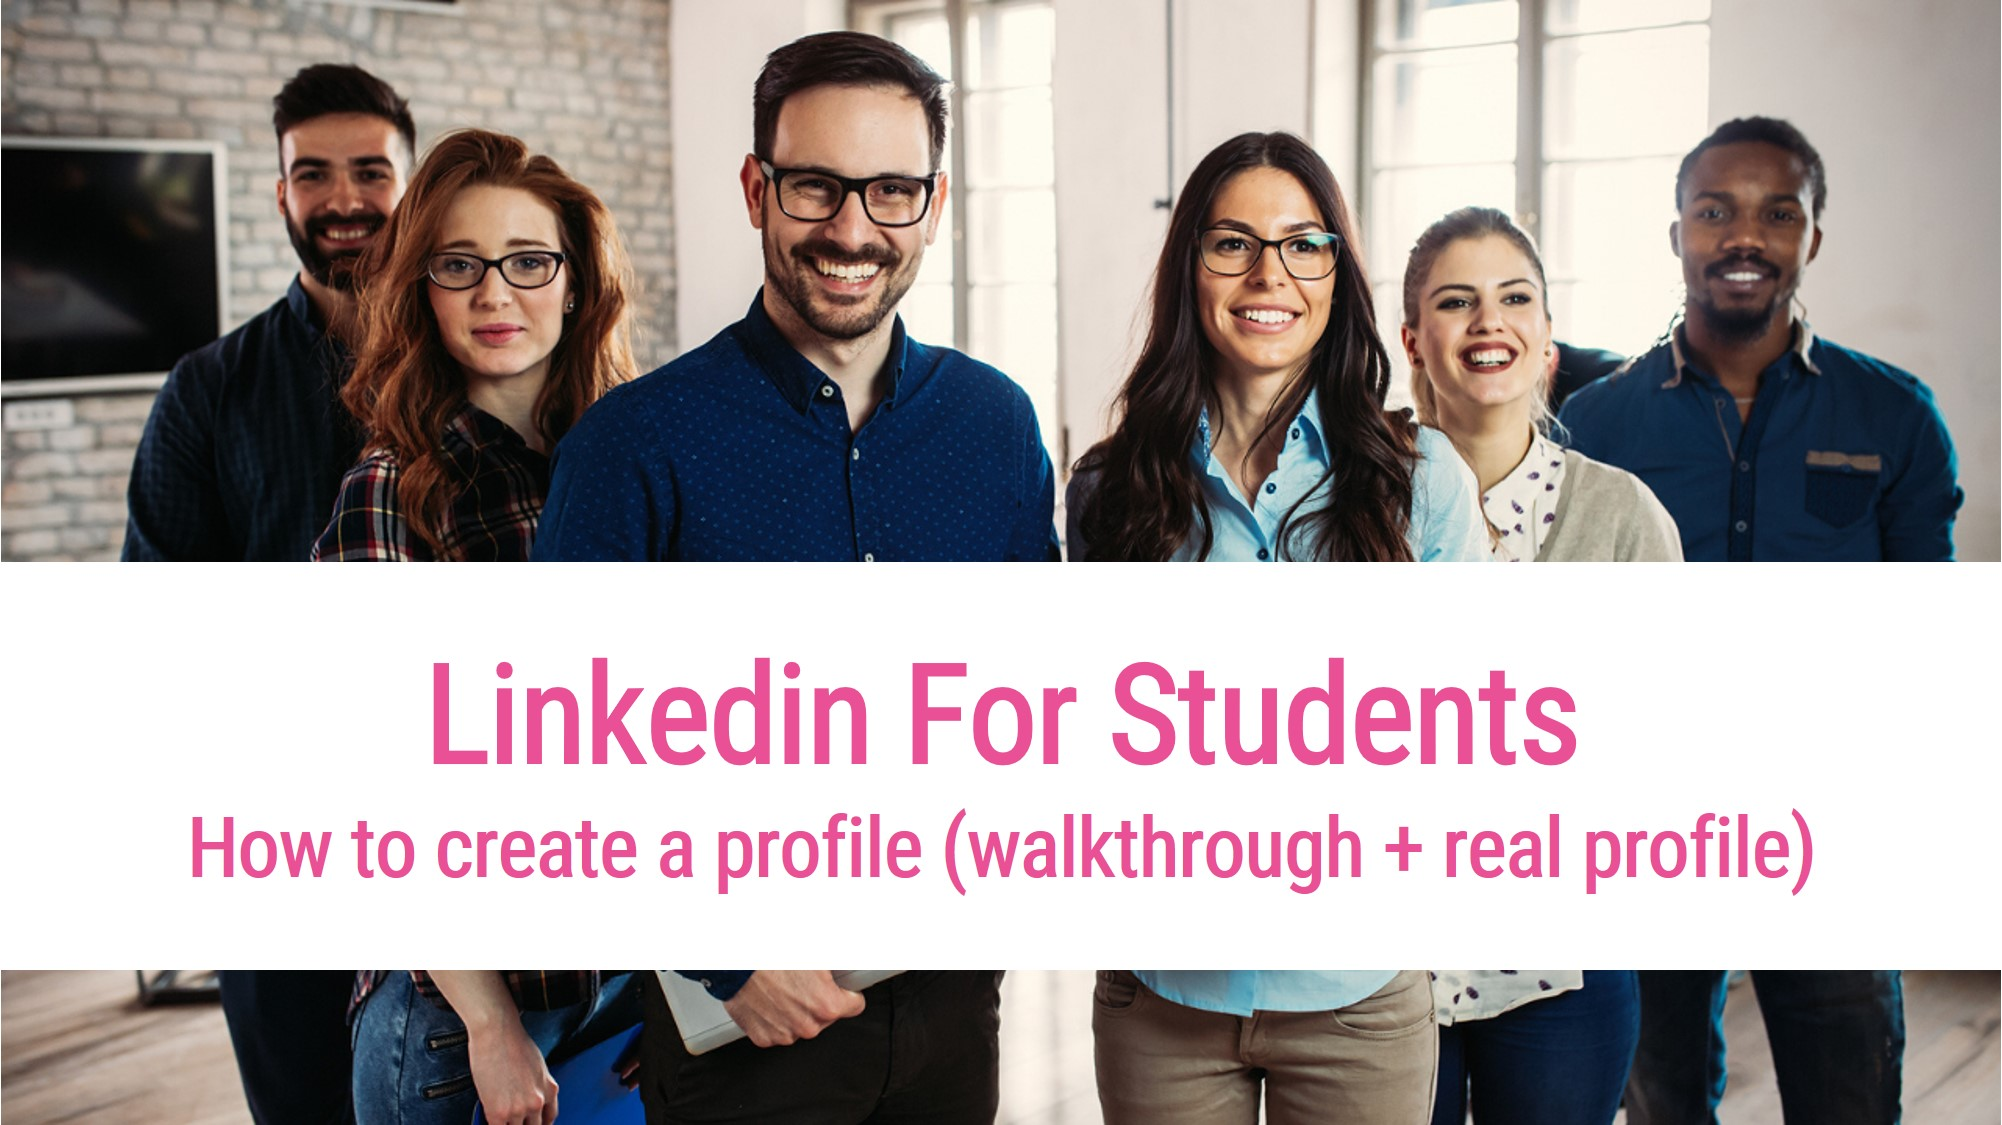 How to create a linkedin profile for students